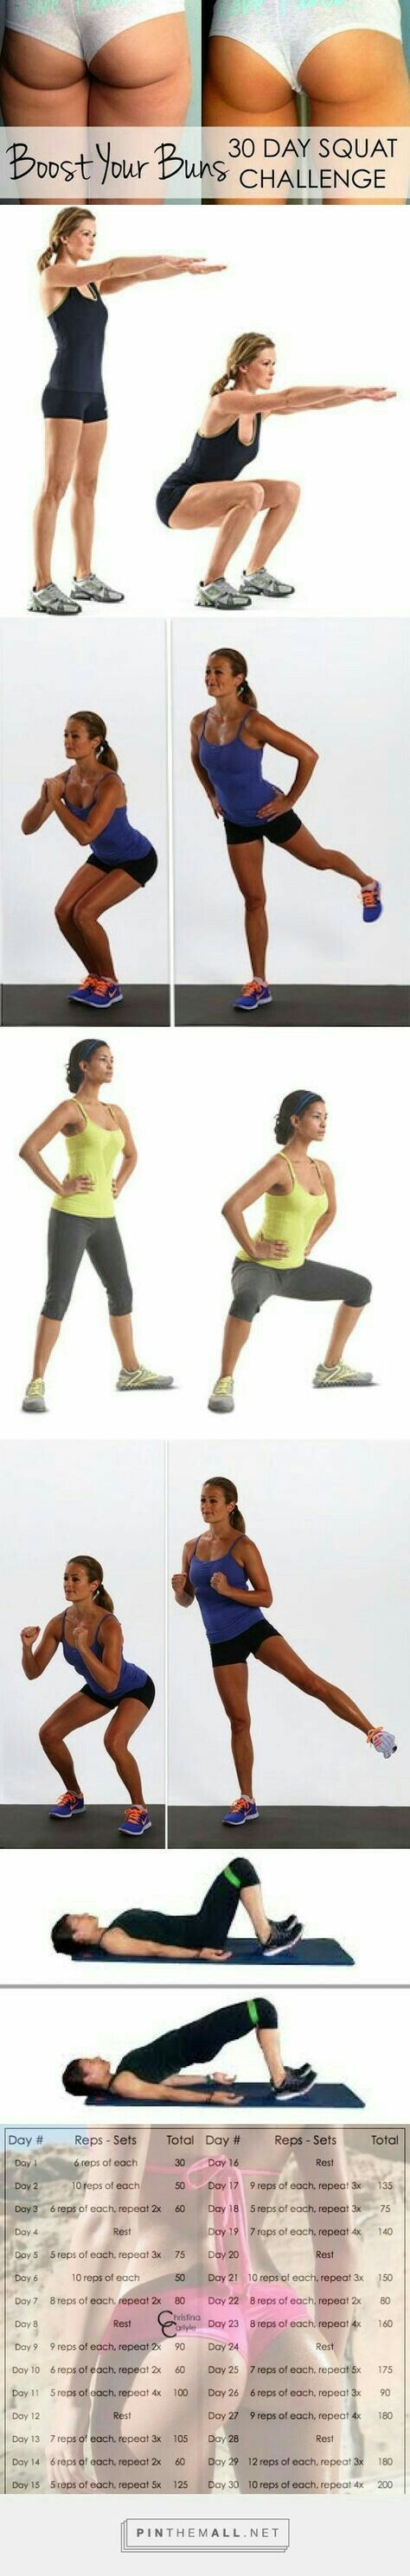 weight loss, how to lose weight, how to lose weight fast, lose weight fast, lose weight, weight loss tips, diet plans, fat burner, how to lose belly fat, low carb diet, diet, diet program, weight loss program